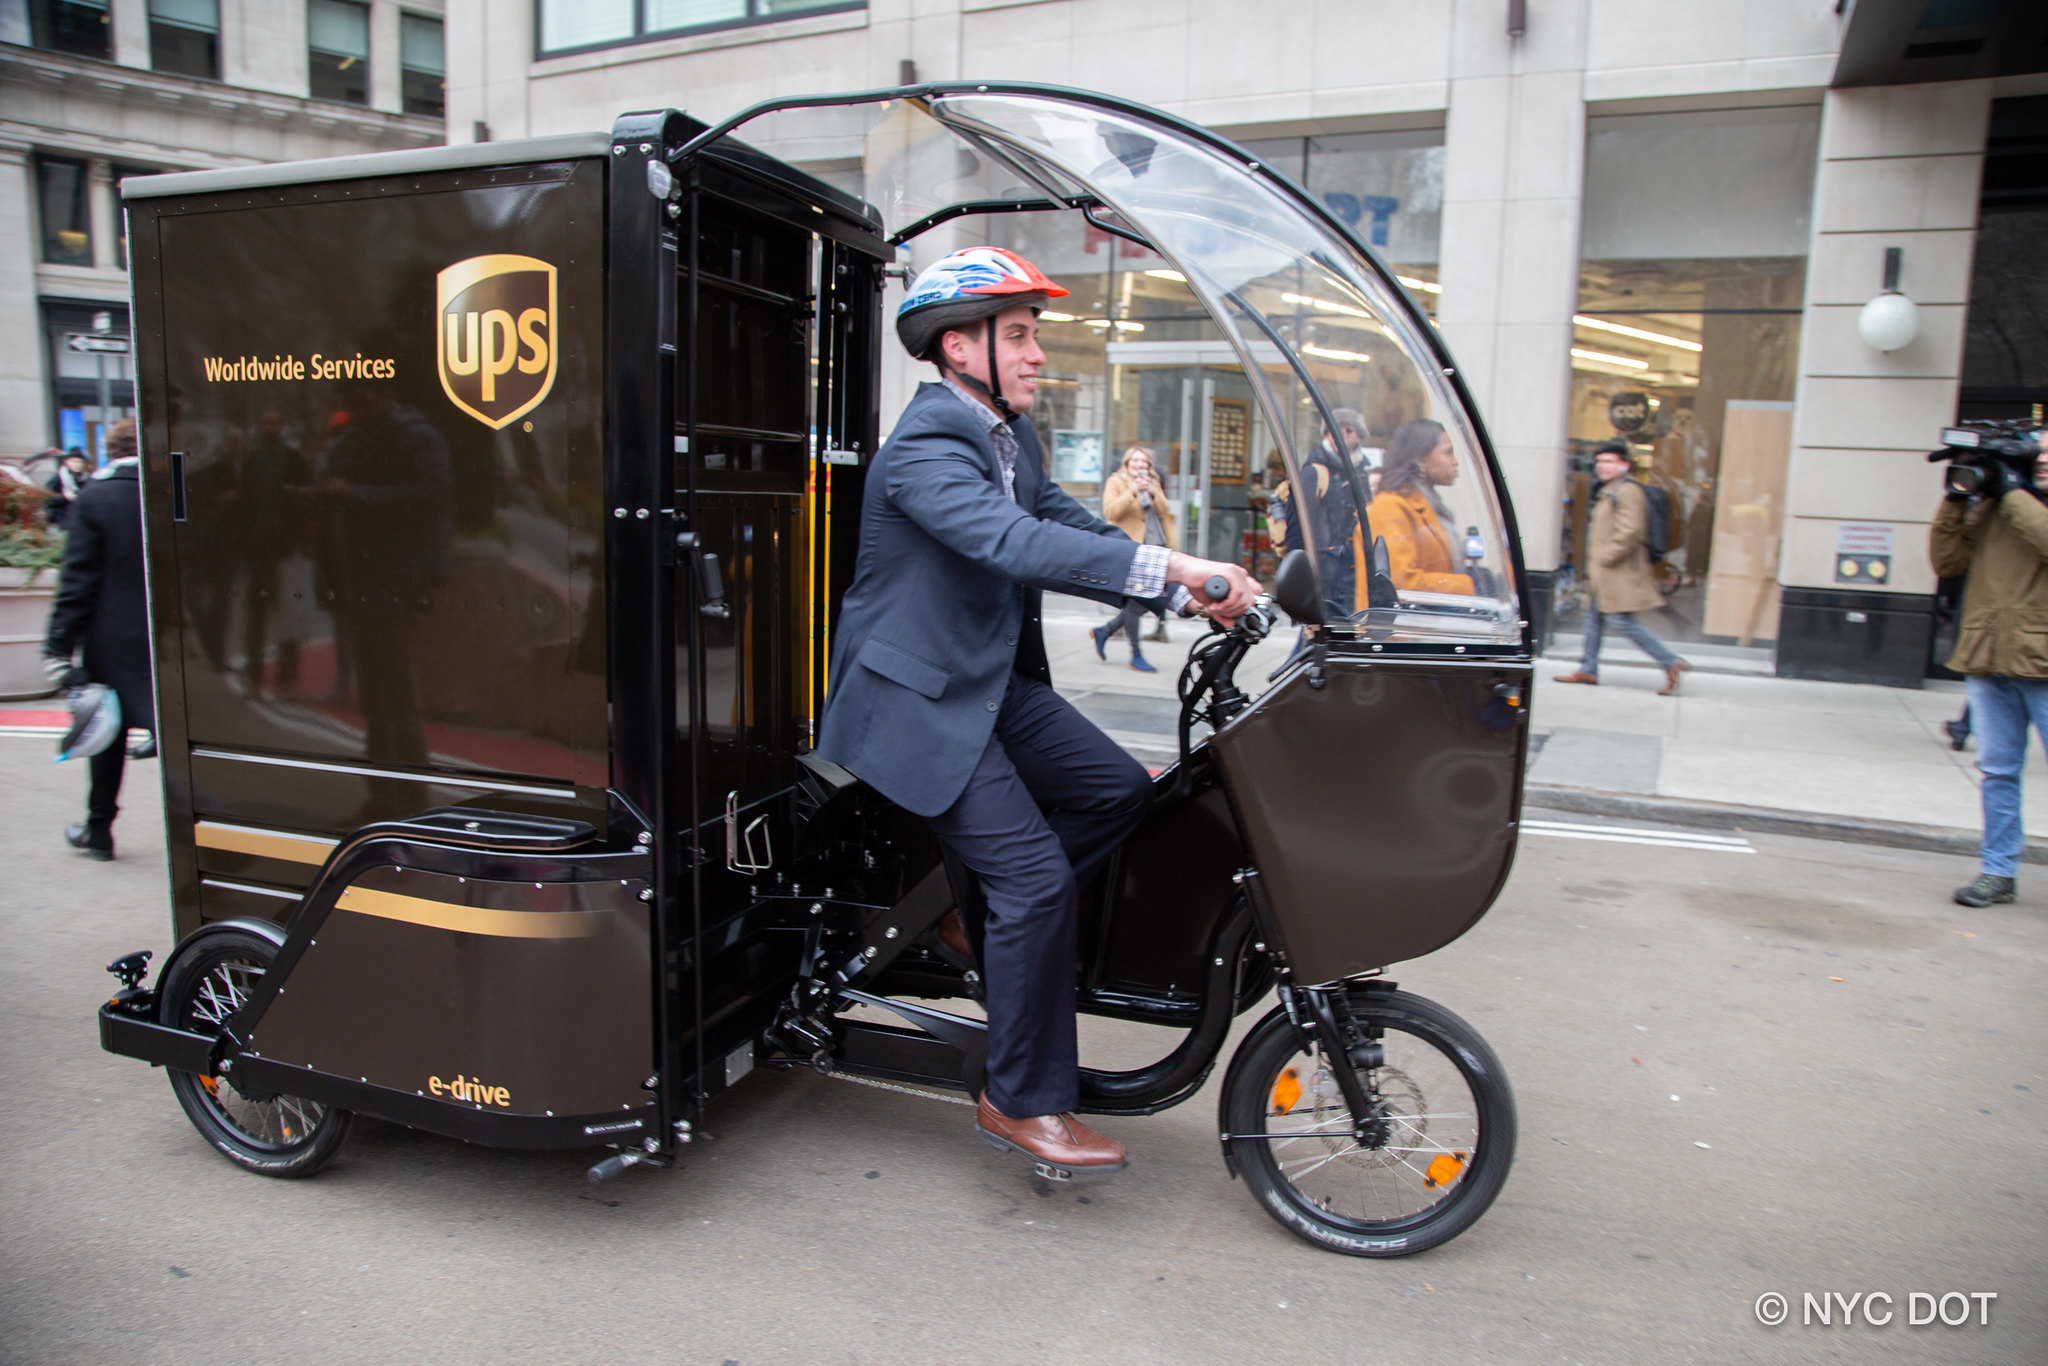 Mayor de Blasio allows UPS to use e-bikes with throttles in NYC — but not immigrant delivery drivers, advocates say